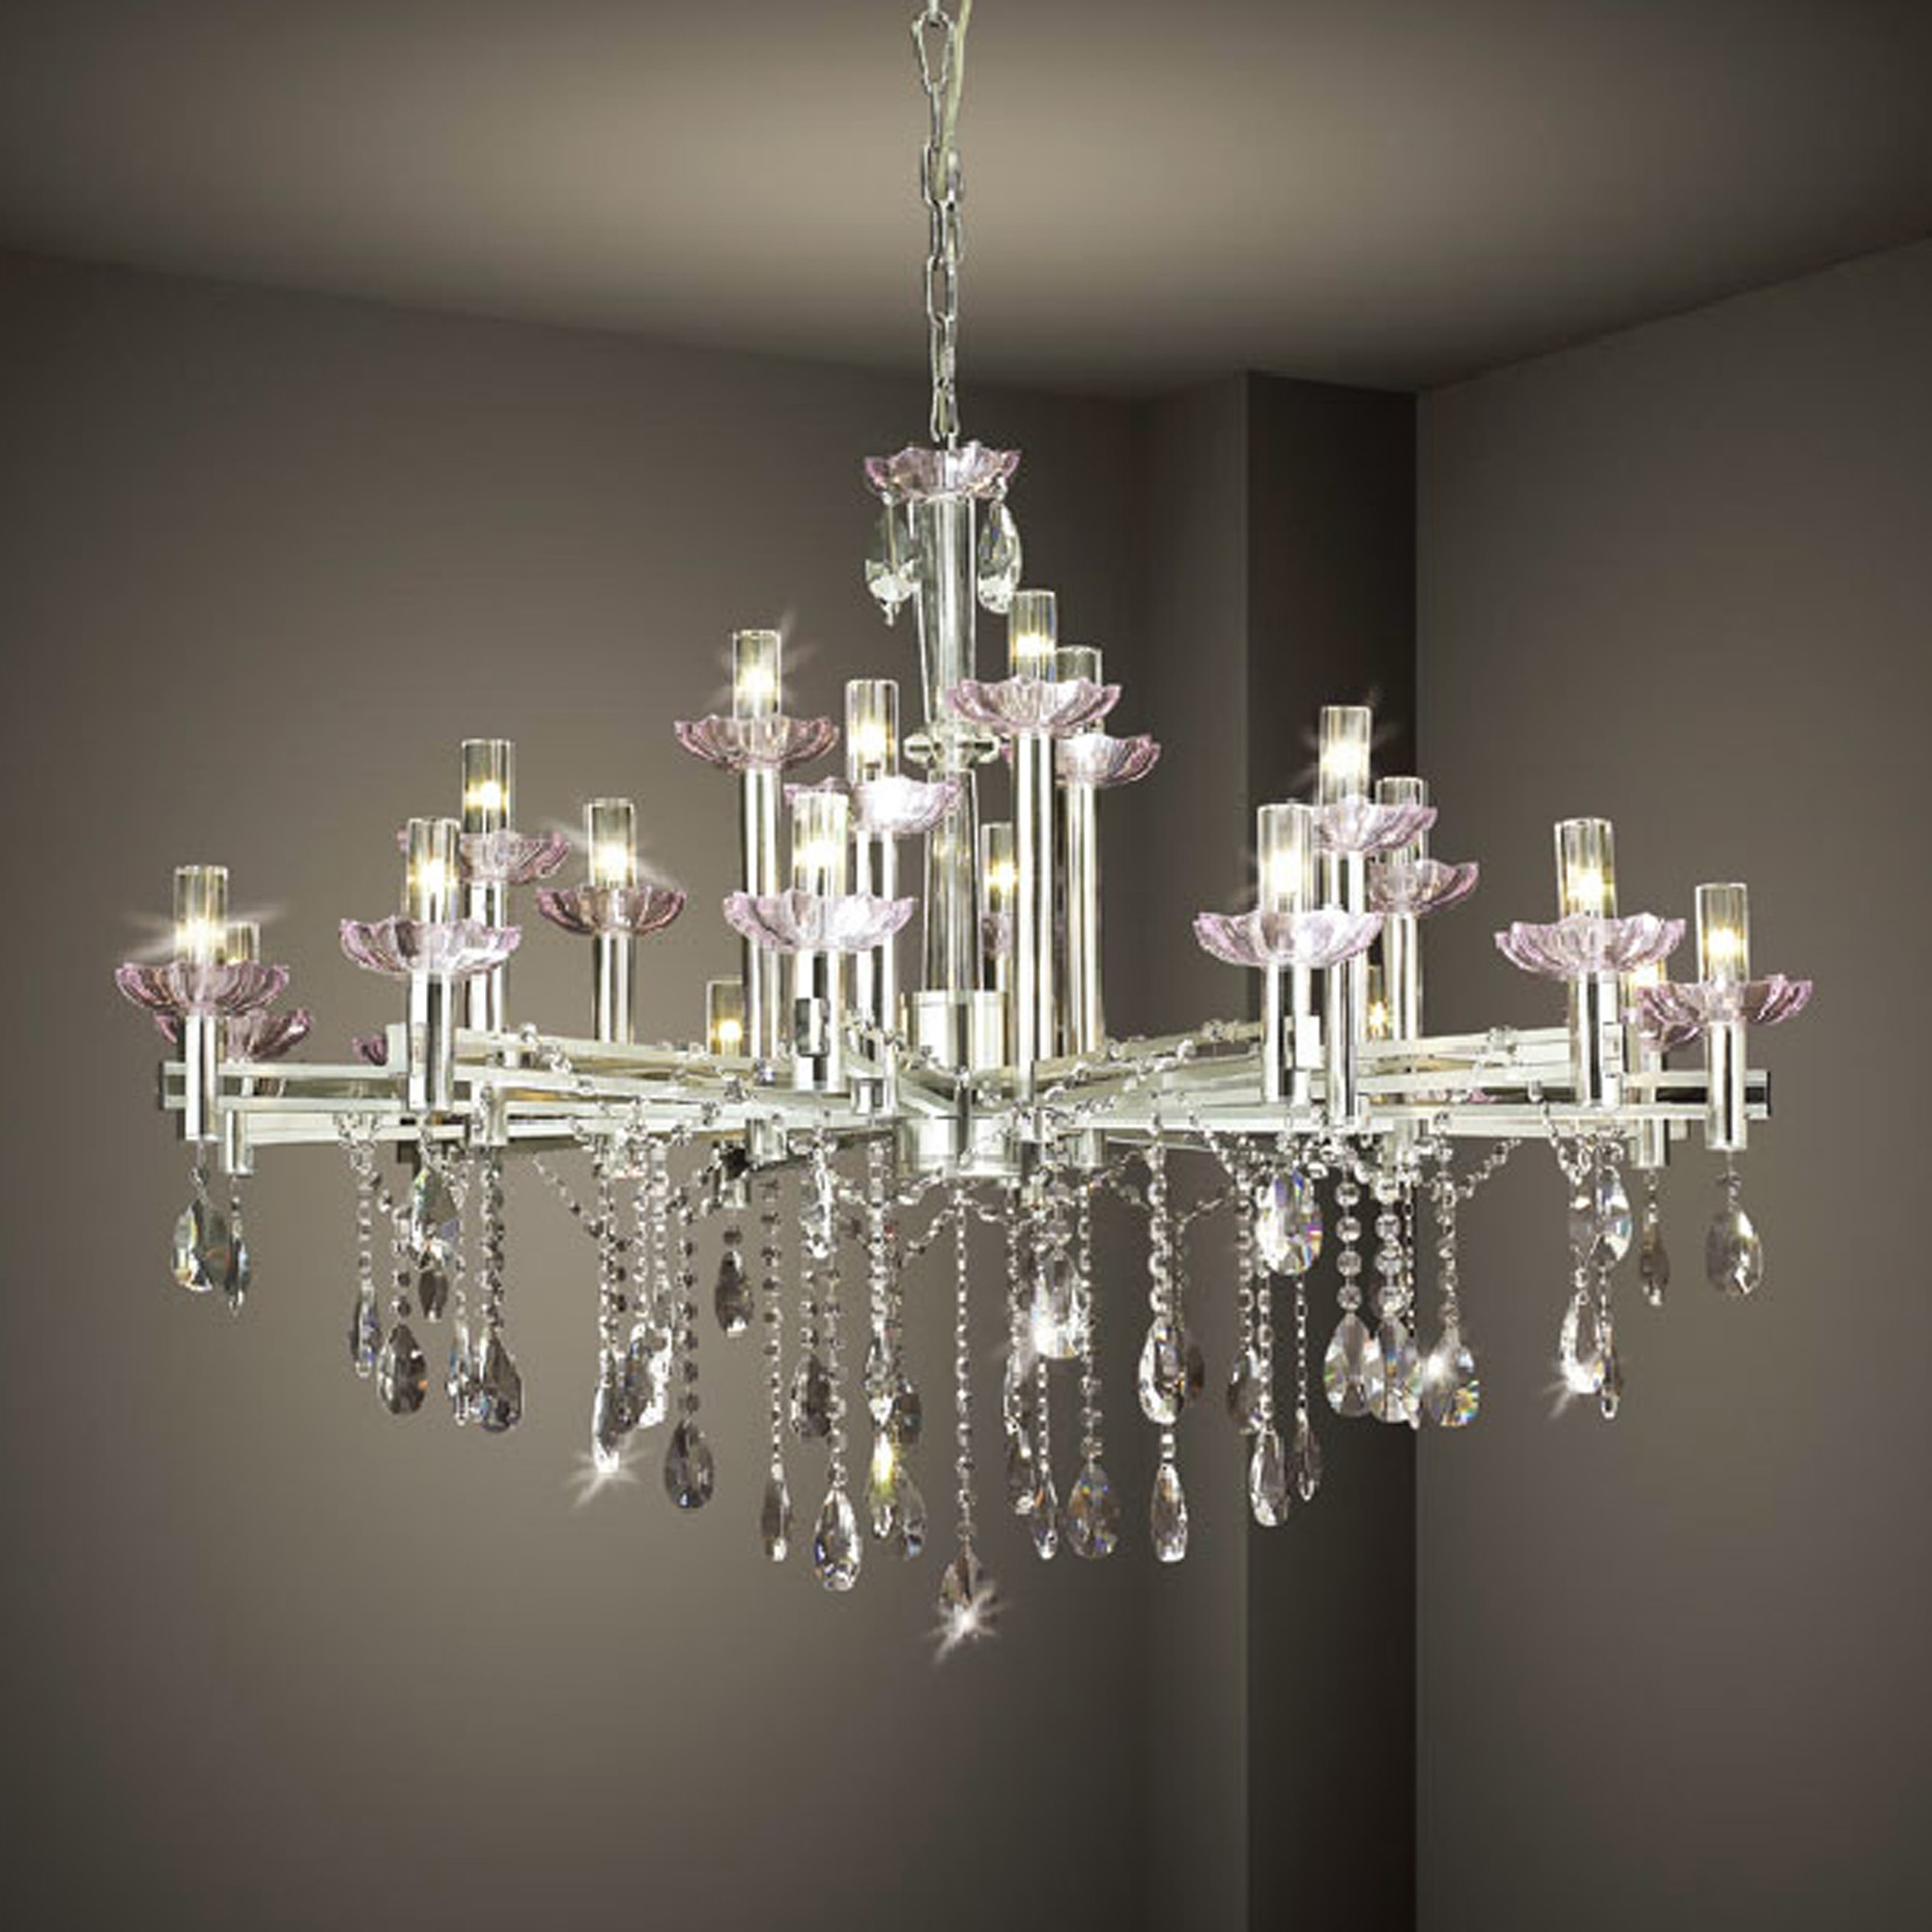 Hanging Modern Crystal Chandelier Lighting With Stainless Steel Throughout Contemporary Large Chandeliers (Image 10 of 15)